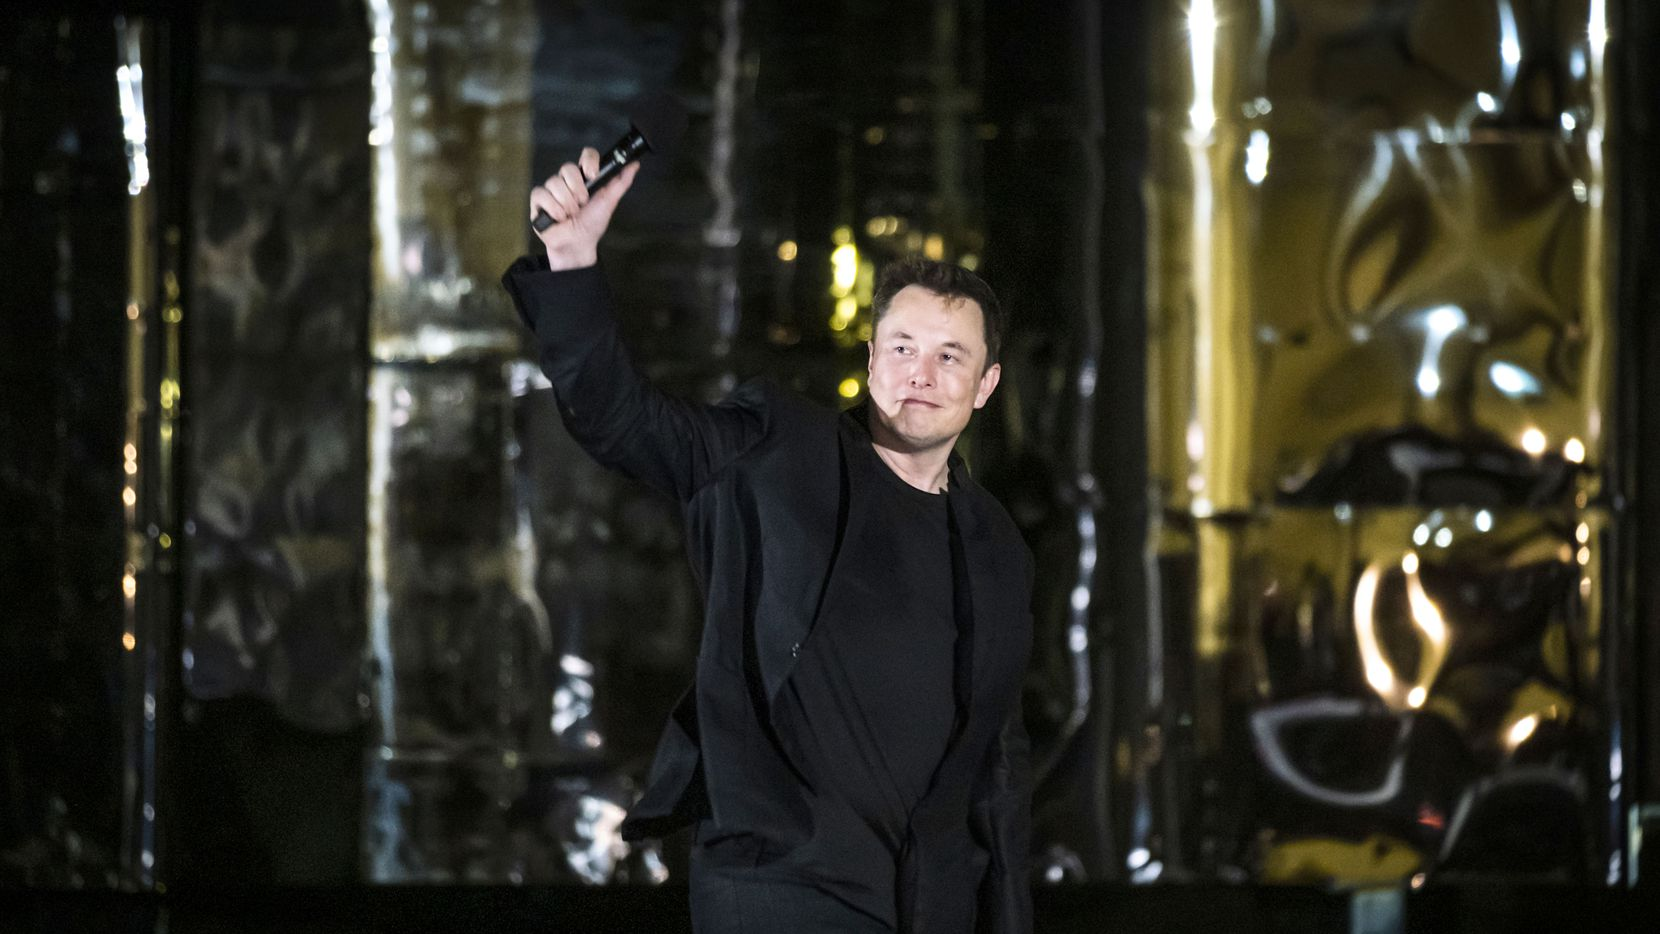 SpaceX founder Elon Musk made a presentation in front of a prototype of the Starship spacecraft at the SpaceX Space Launch Facility in Boca Chica in 2019.